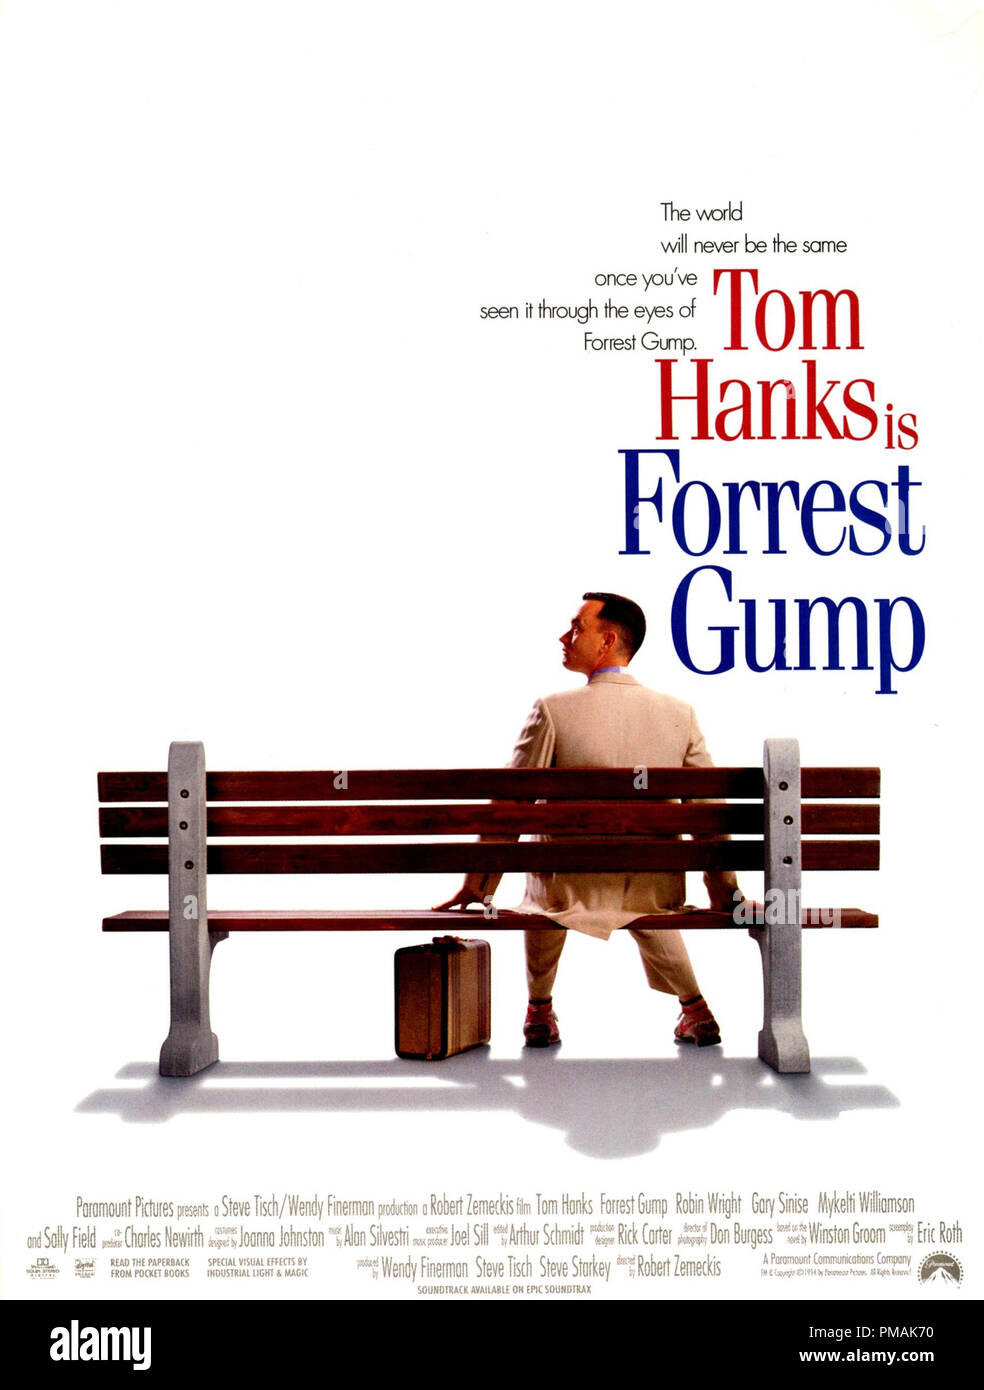 Forrest Gump 1994 Paramount Poster File Reference 33300 268tha Stock Photo Alamy